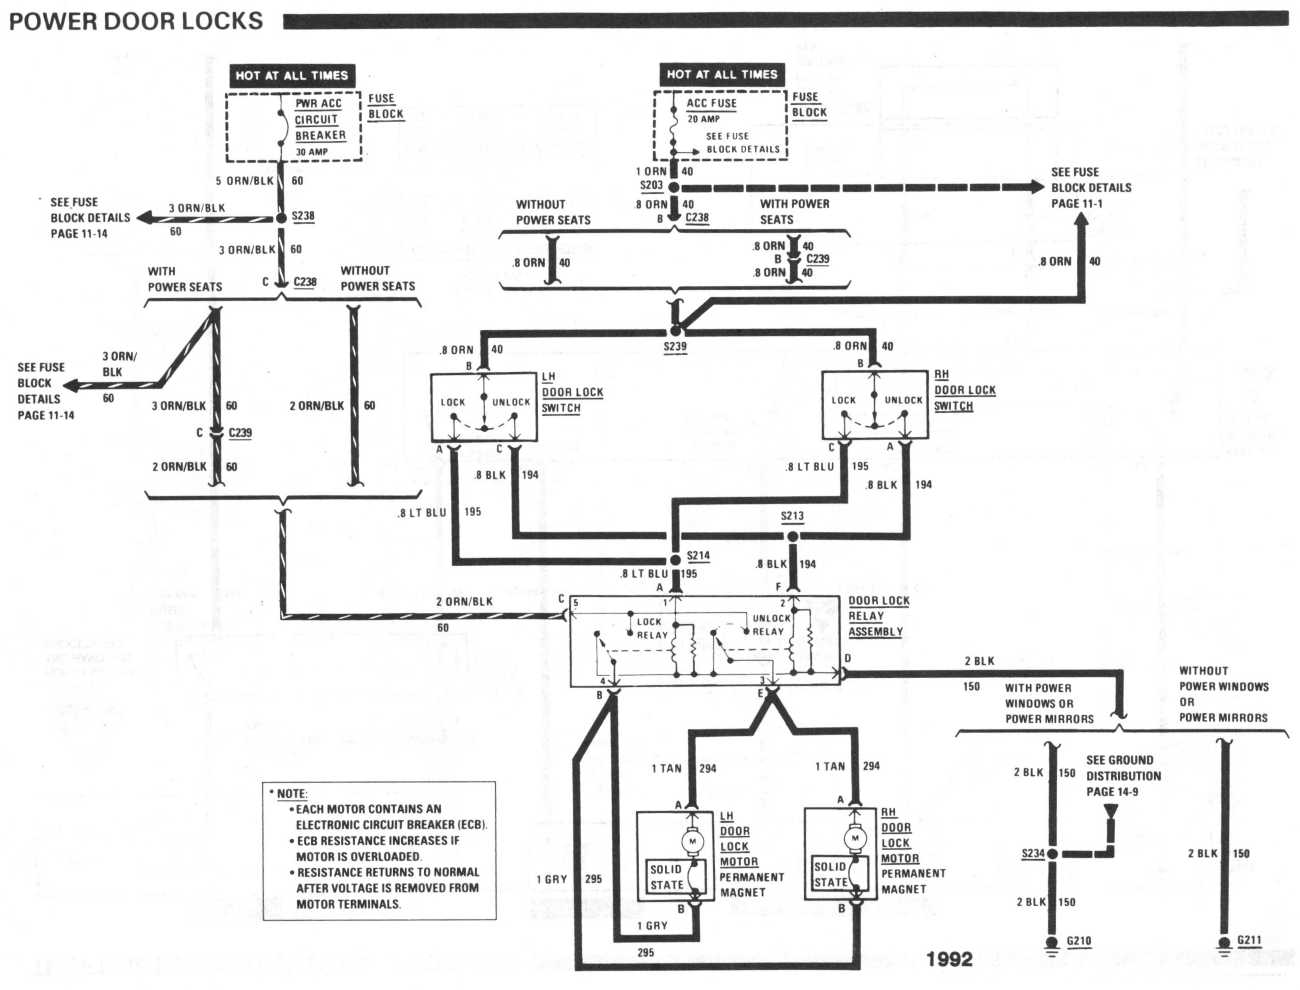 90 Dodge Dakota Fuse Diagram Real Wiring 2003 Box 2001 F150 Power Door Lock 40 Problem